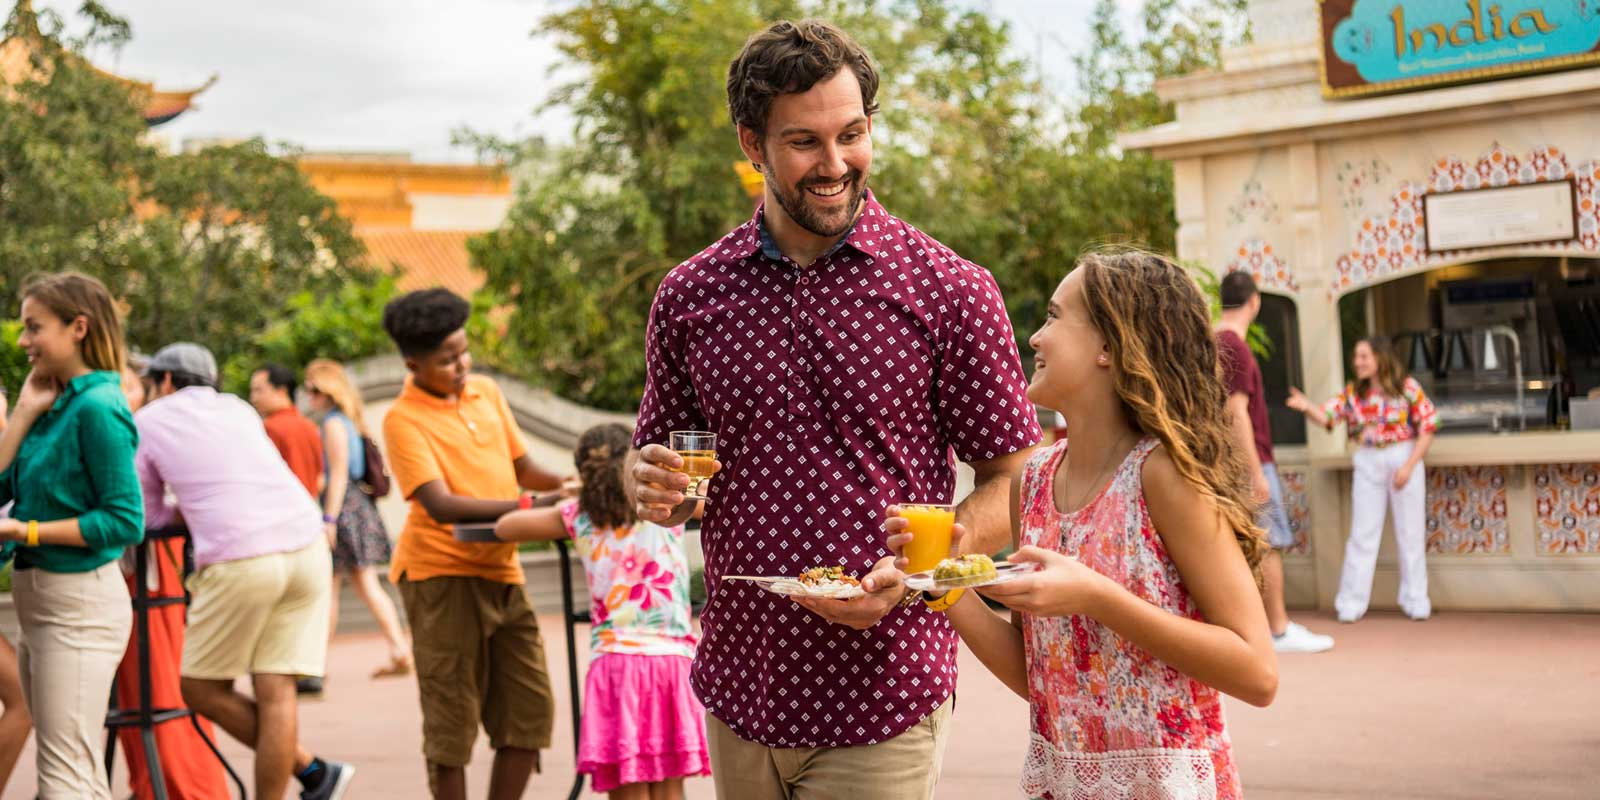 A father and daughter smile at each other while carrying a drink and plate of food at Epcot International Food & Wine Festival at Disney World in Florida.